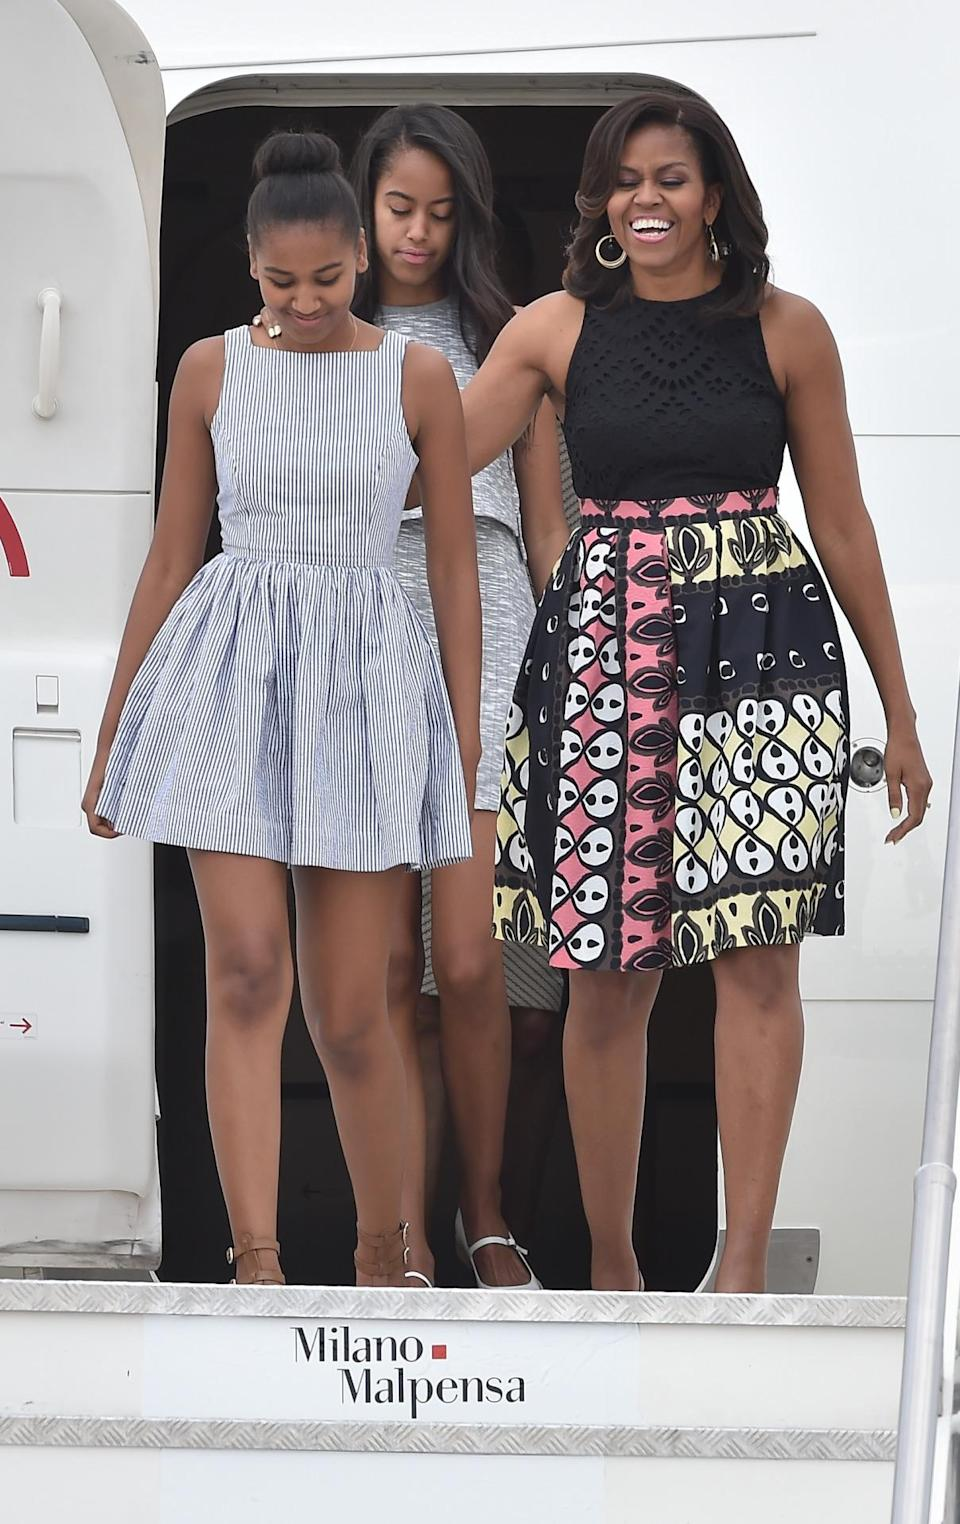 <p>Most likely inspired by Italy's rich art history. Michelle Obama wore a skirt rich in color and featuring a deco-like pattern. </p>